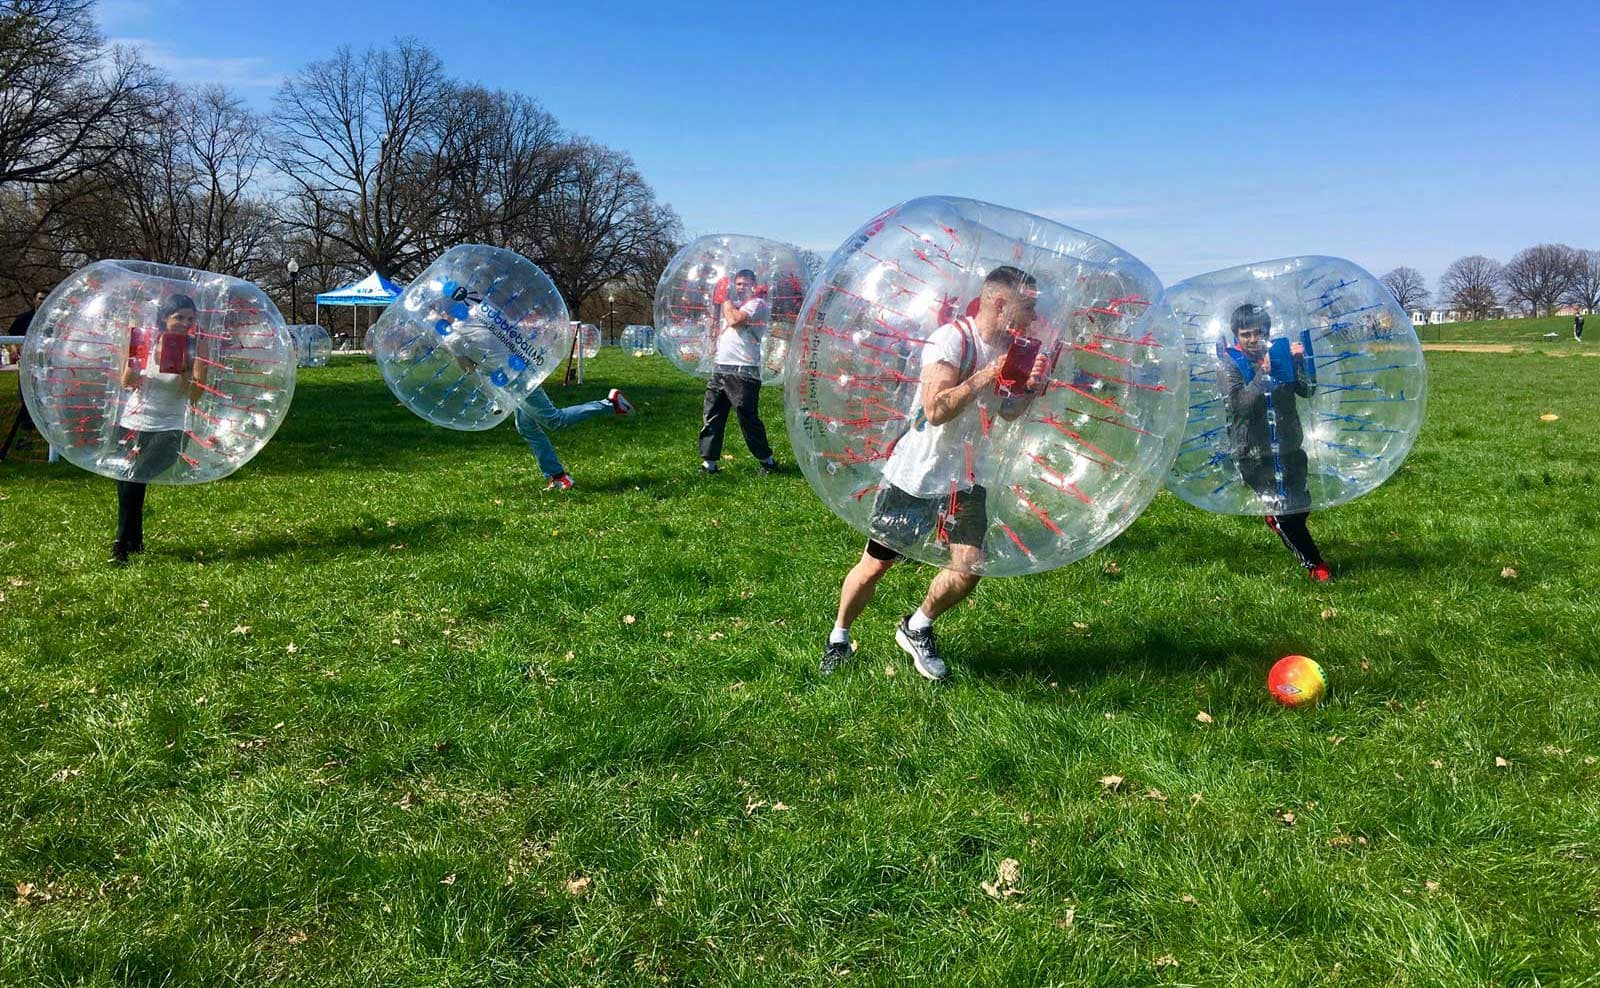 Bubble Soccer in Baltimore at Patterson Park